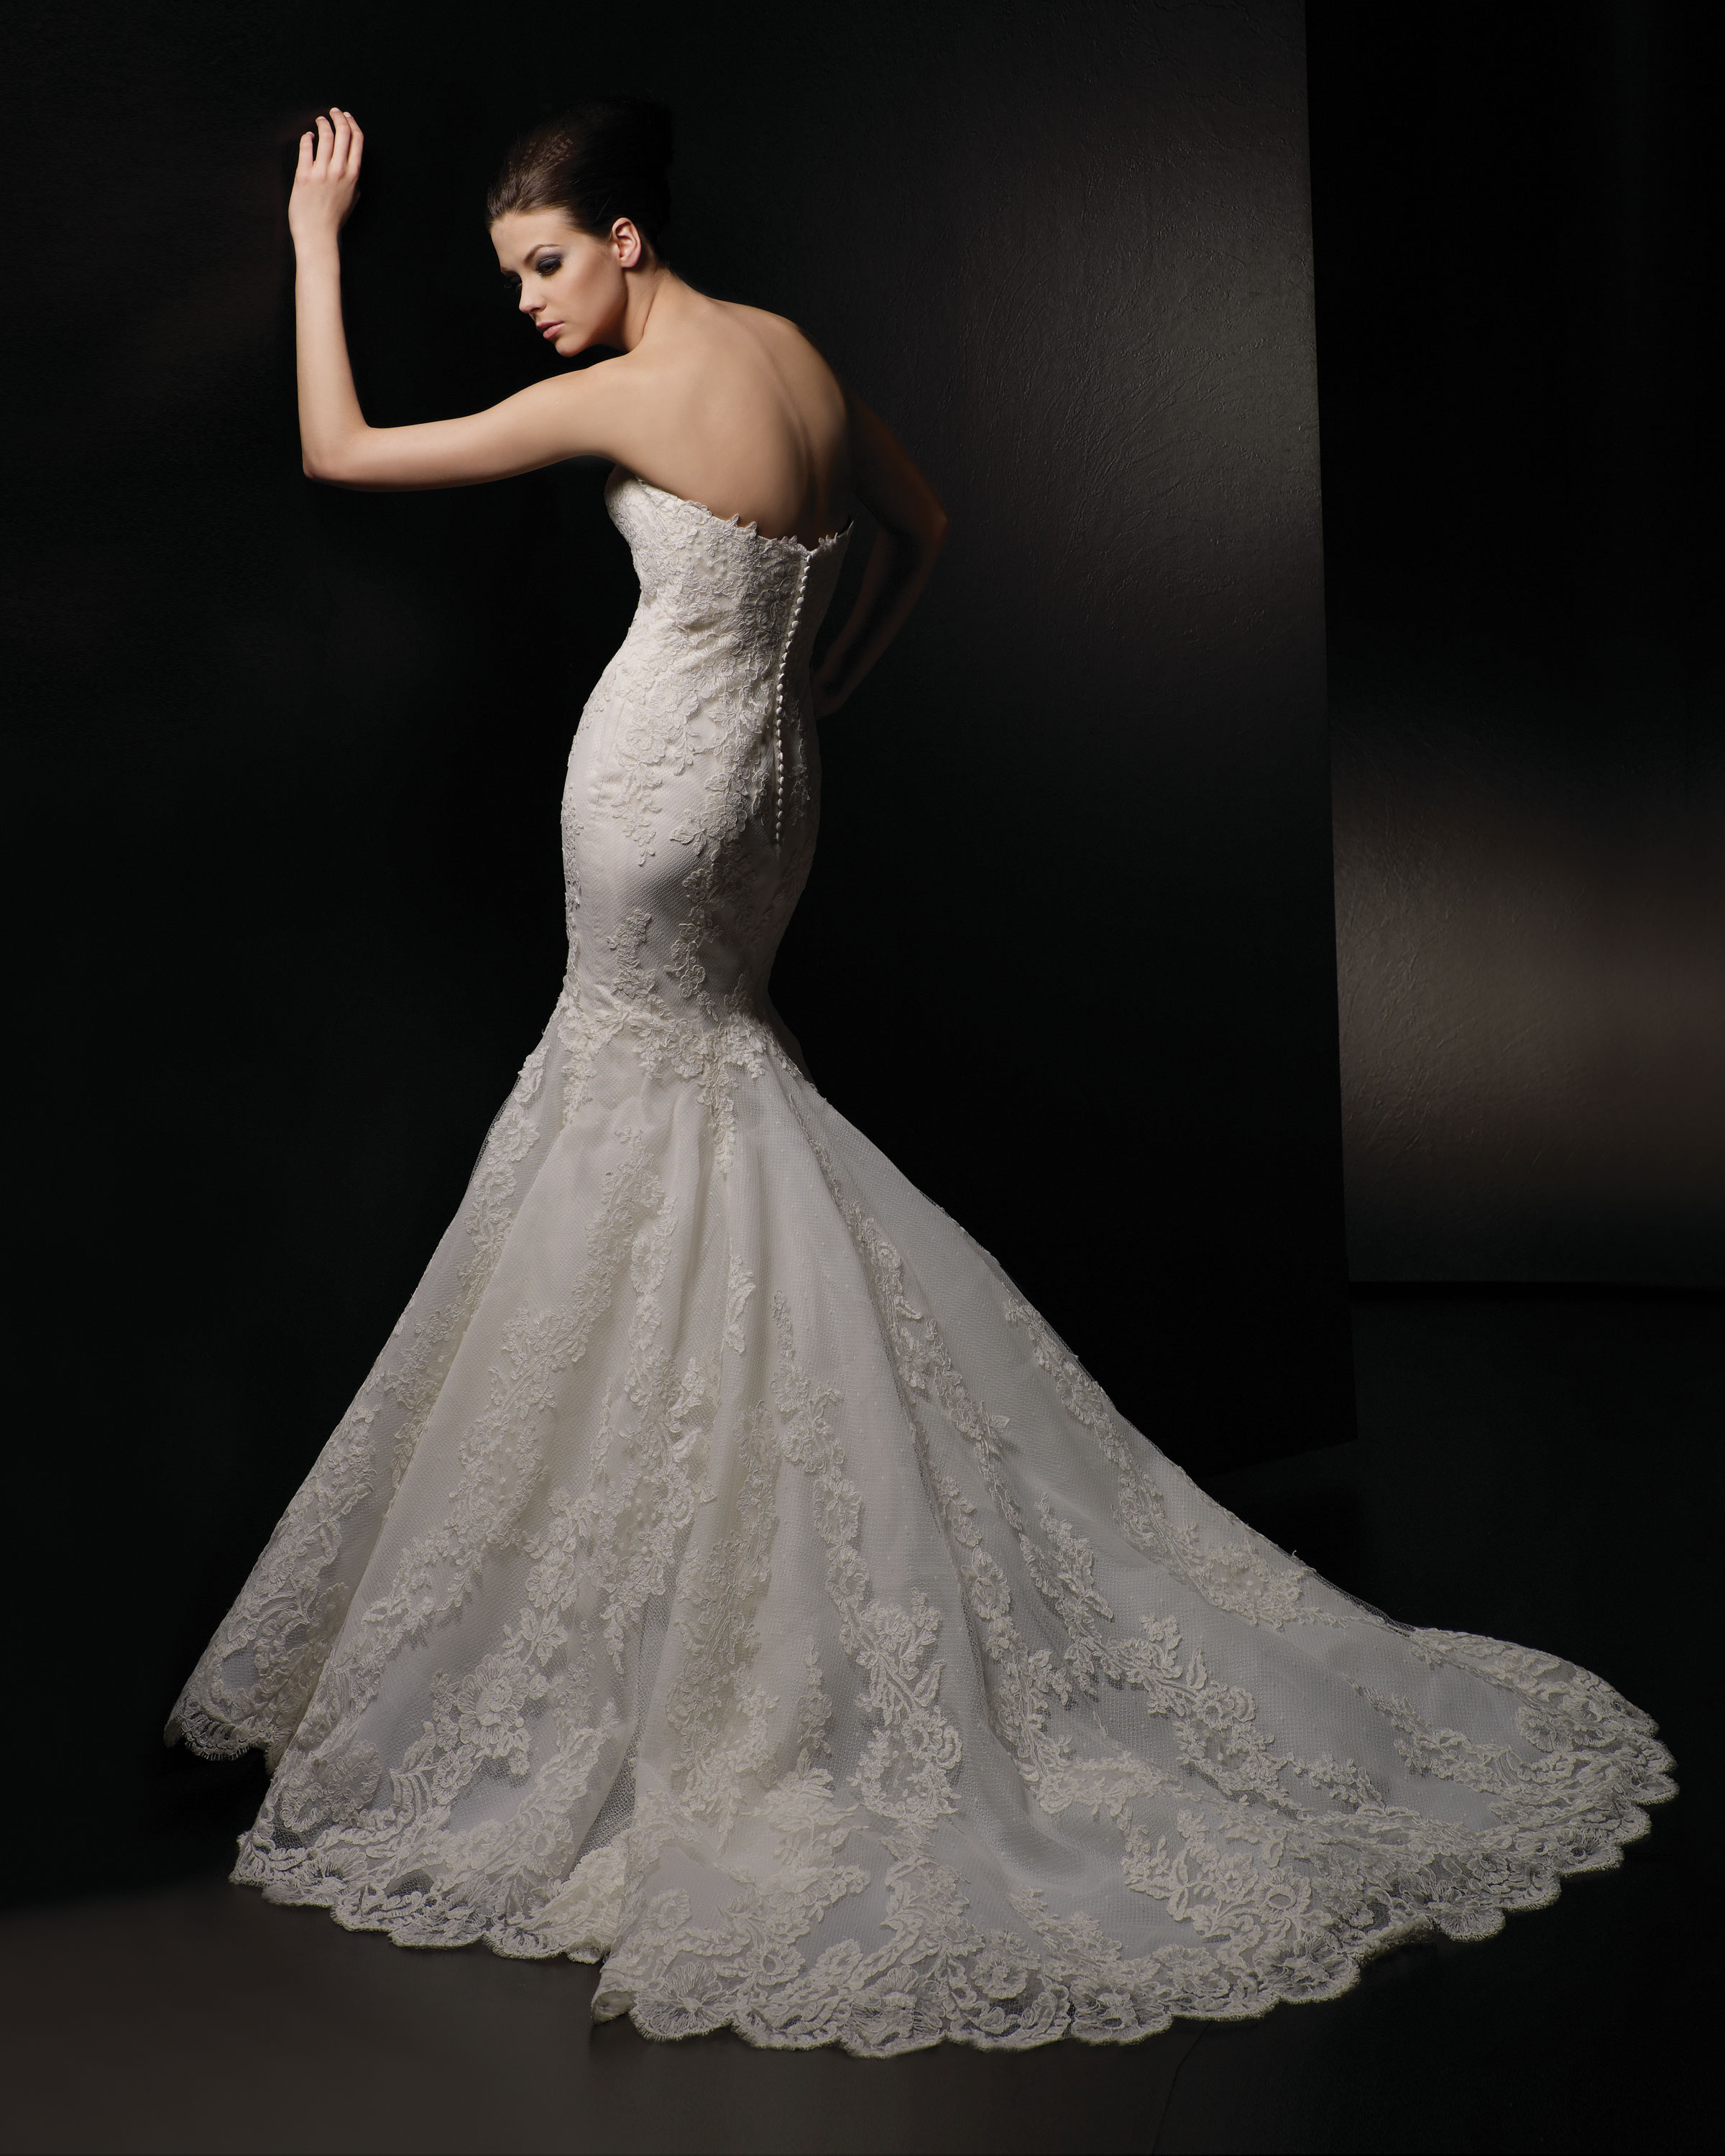 Enzoani wedding dresses have arrived butterfly bridal for Boutique wedding guest dresses